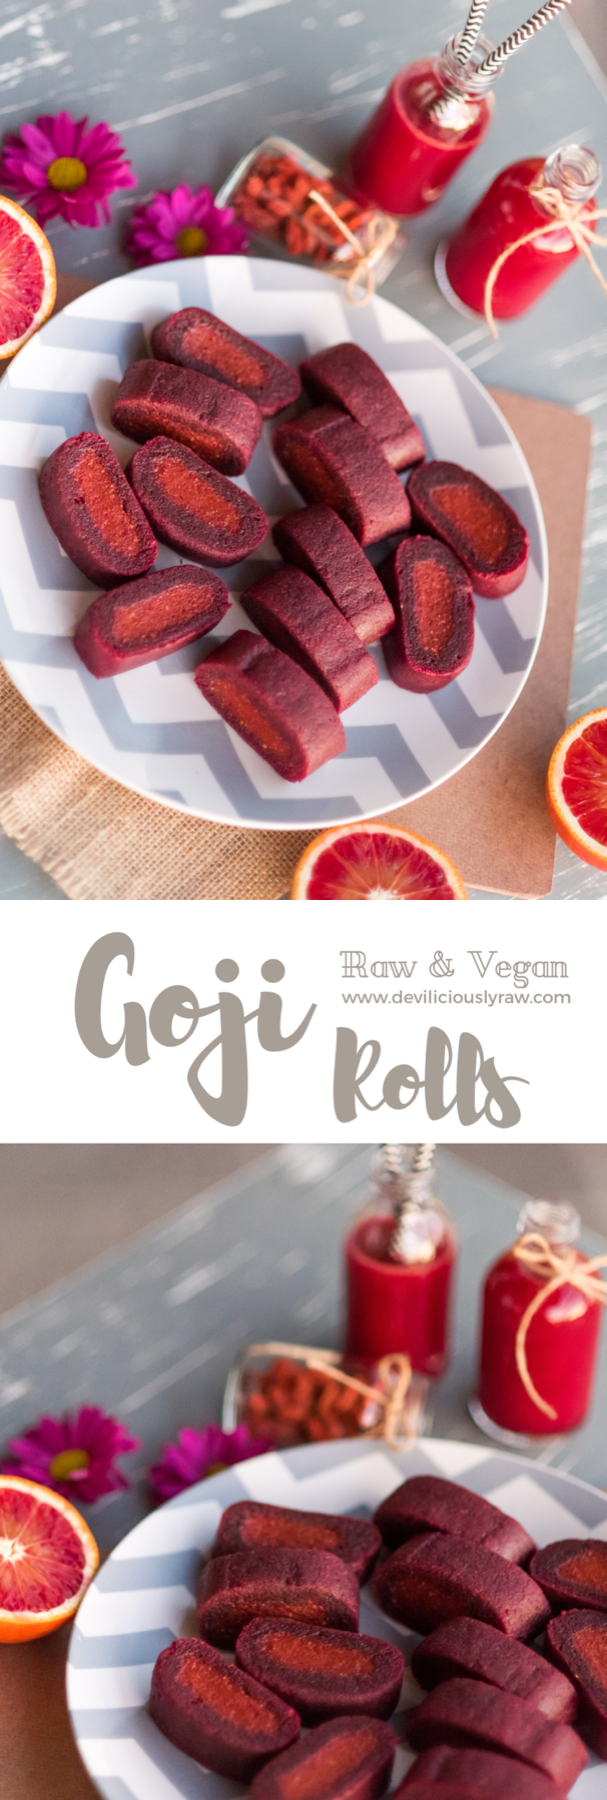 Chewy Goji and Beet Rolls